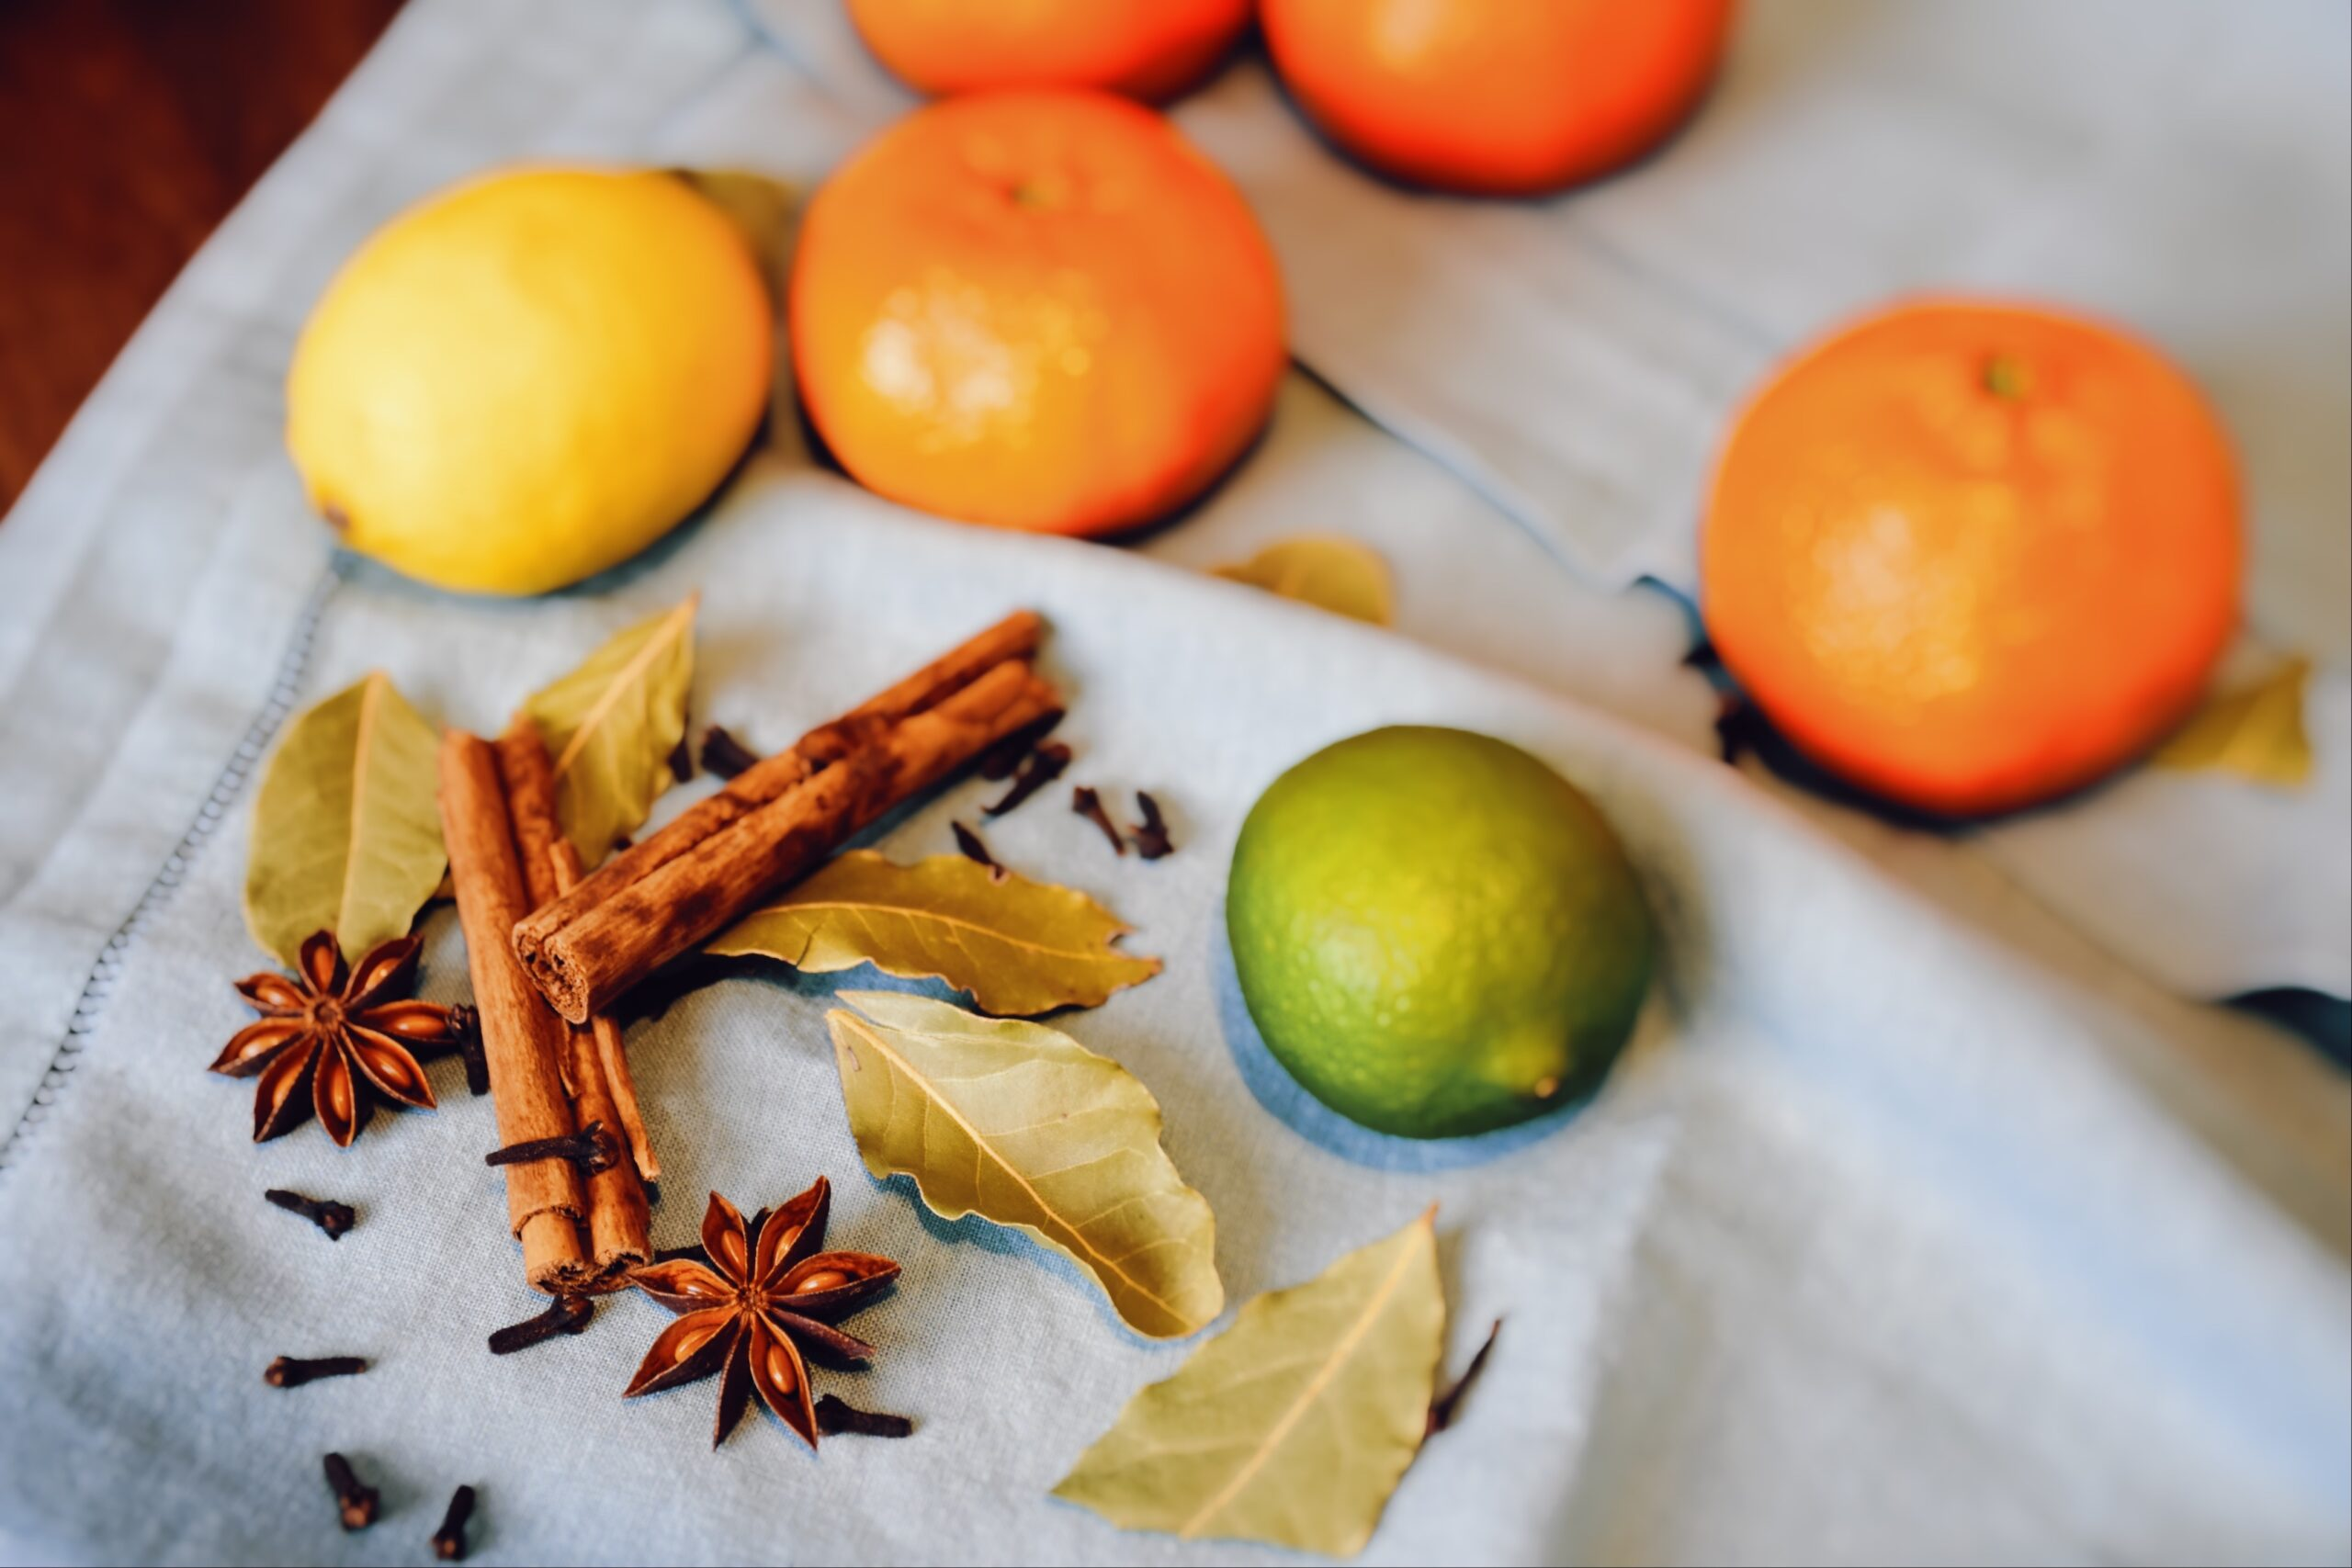 Fruits and spices for mulled wine or Gluhwein, MonAme Magazine